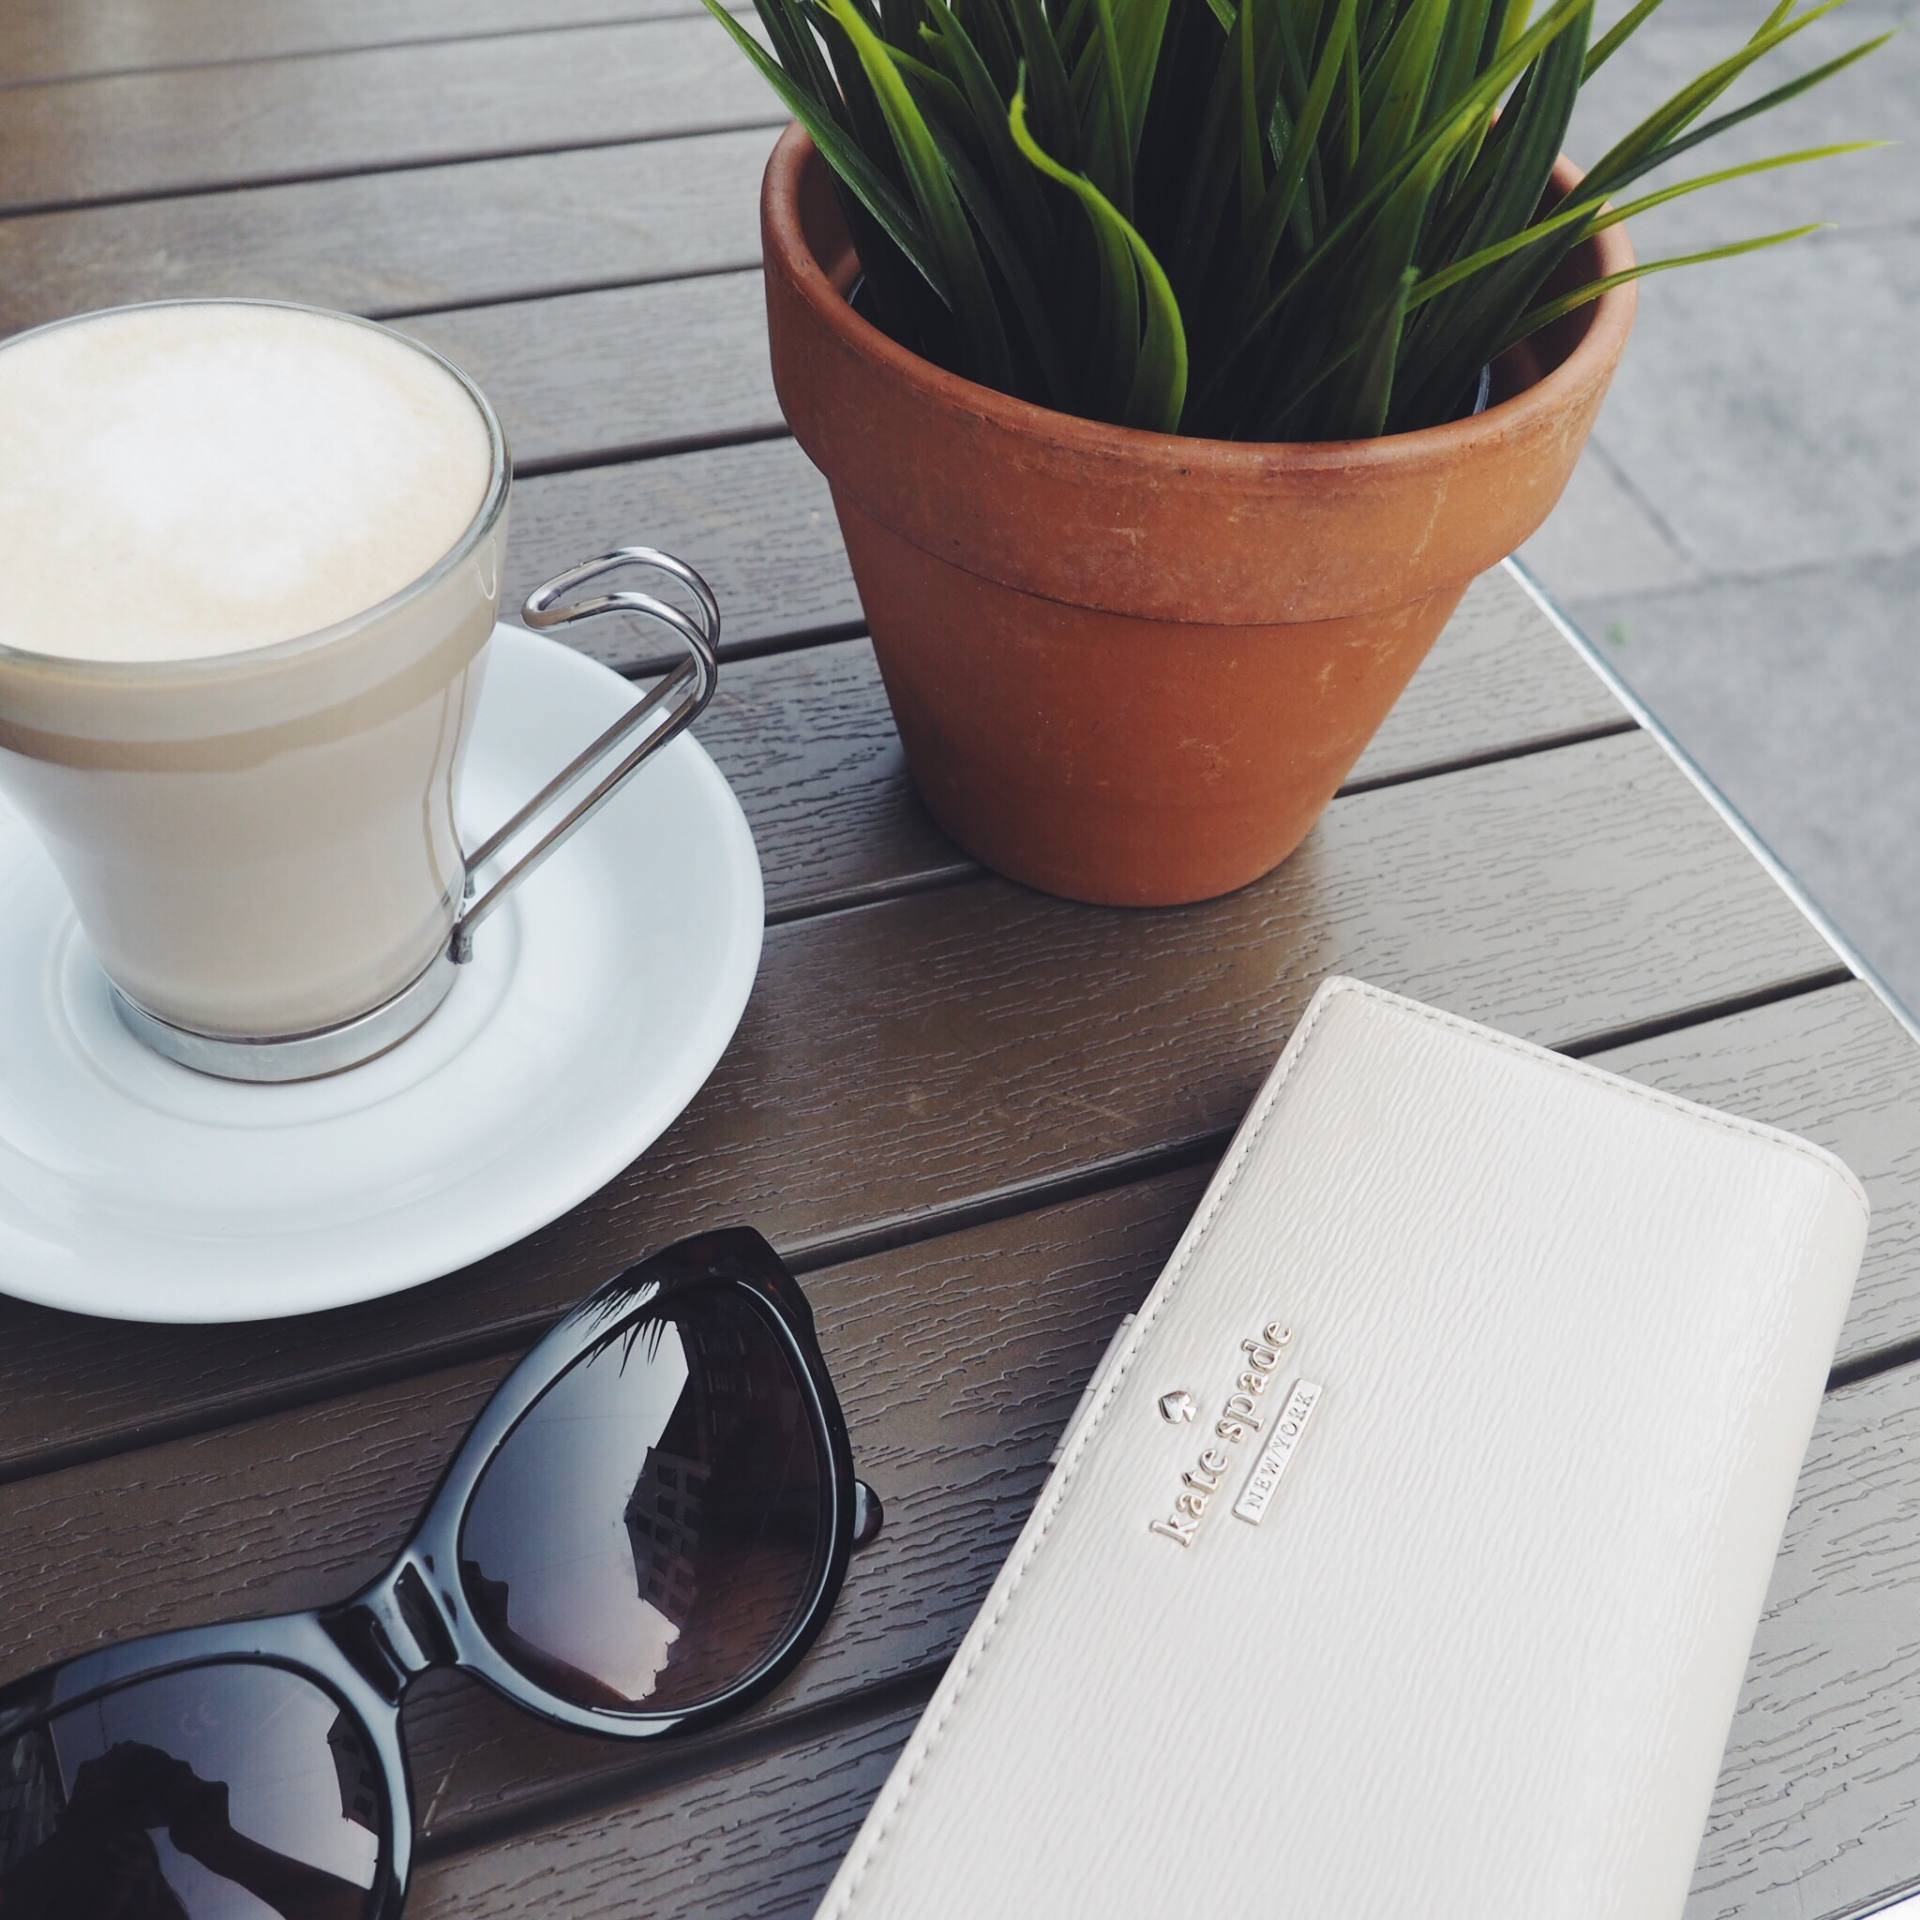 A picture of Latte, sunglasses and Kate Spade wallet